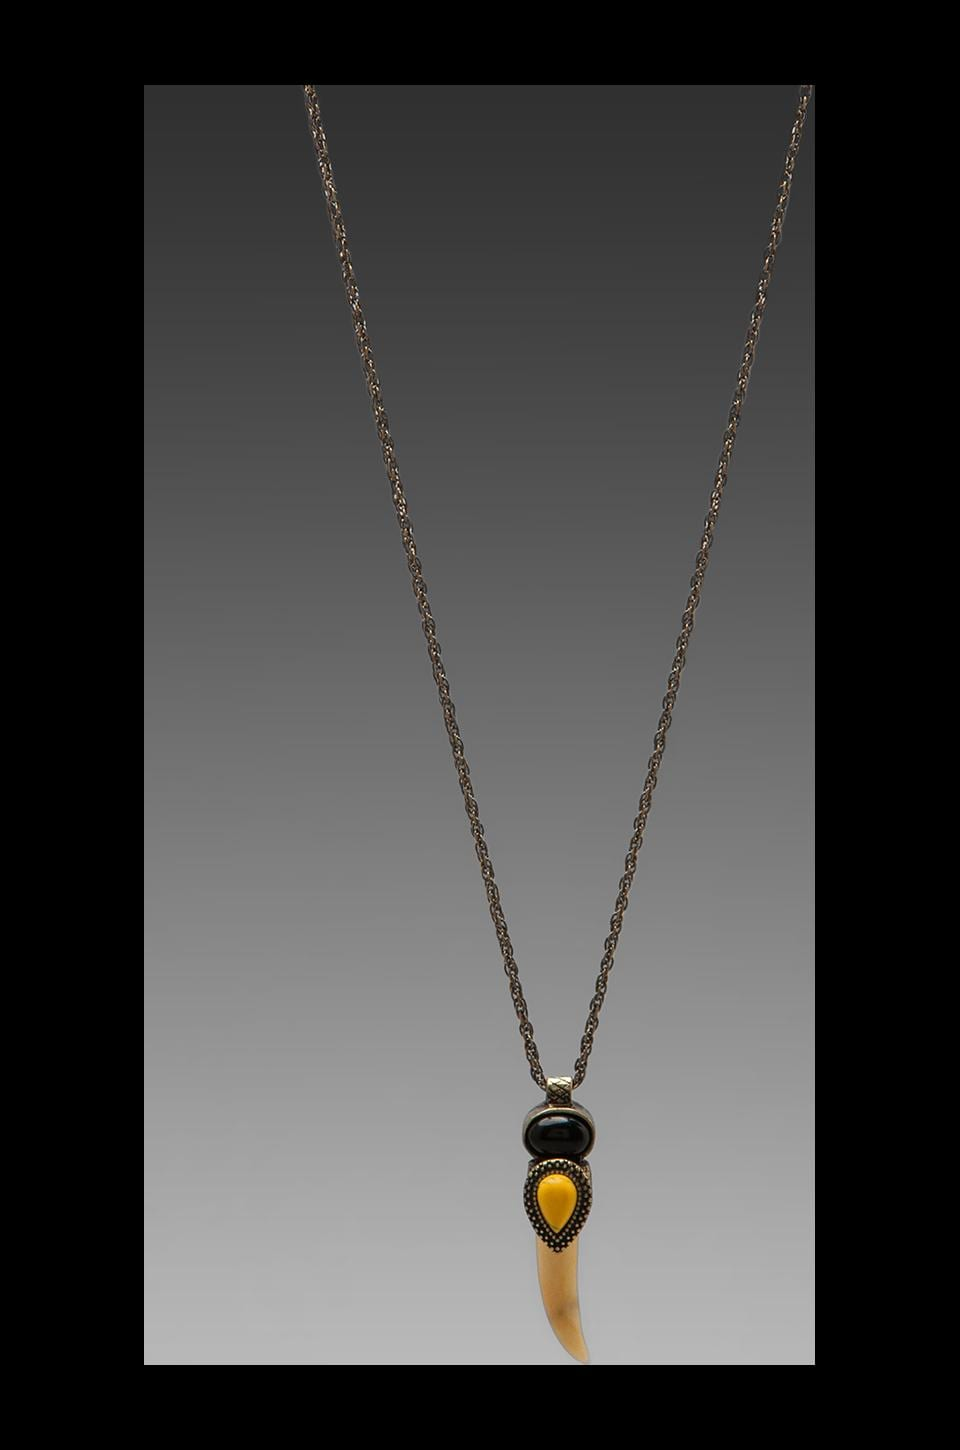 Samantha Wills Walk This Way Necklace in Multi